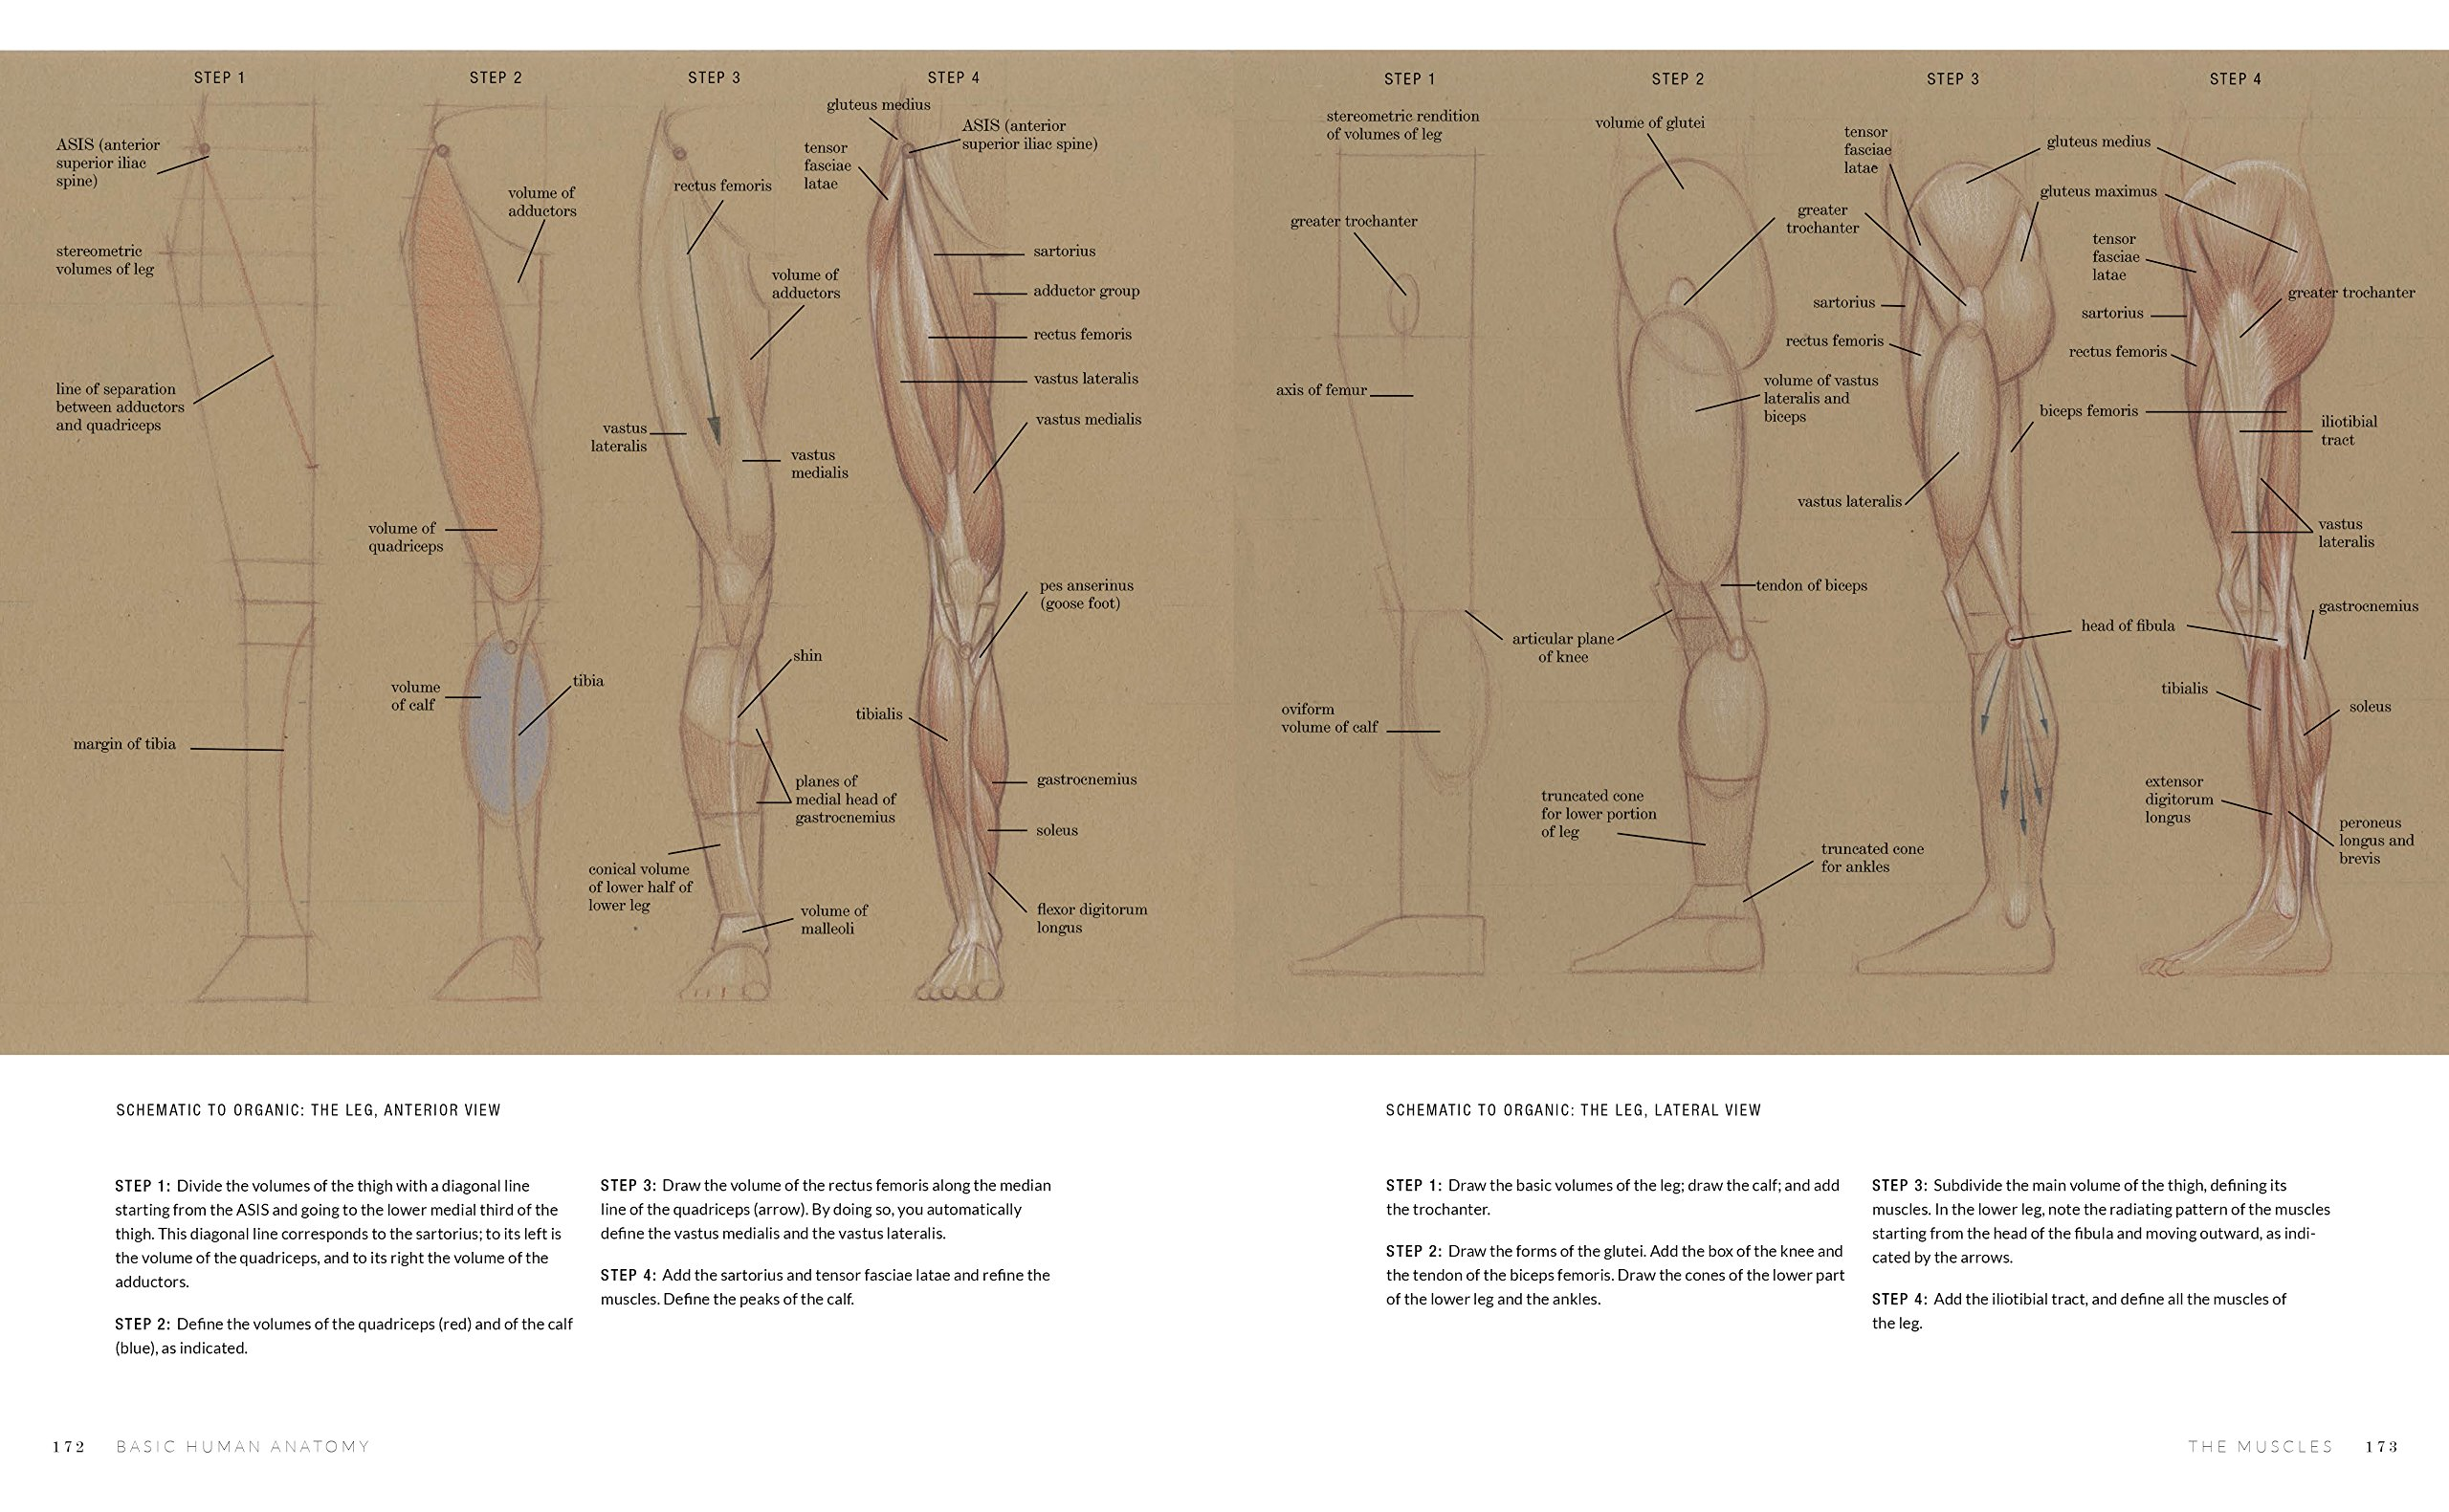 Basic Human Anatomy An Essential Visual Guide For Artists Roberto